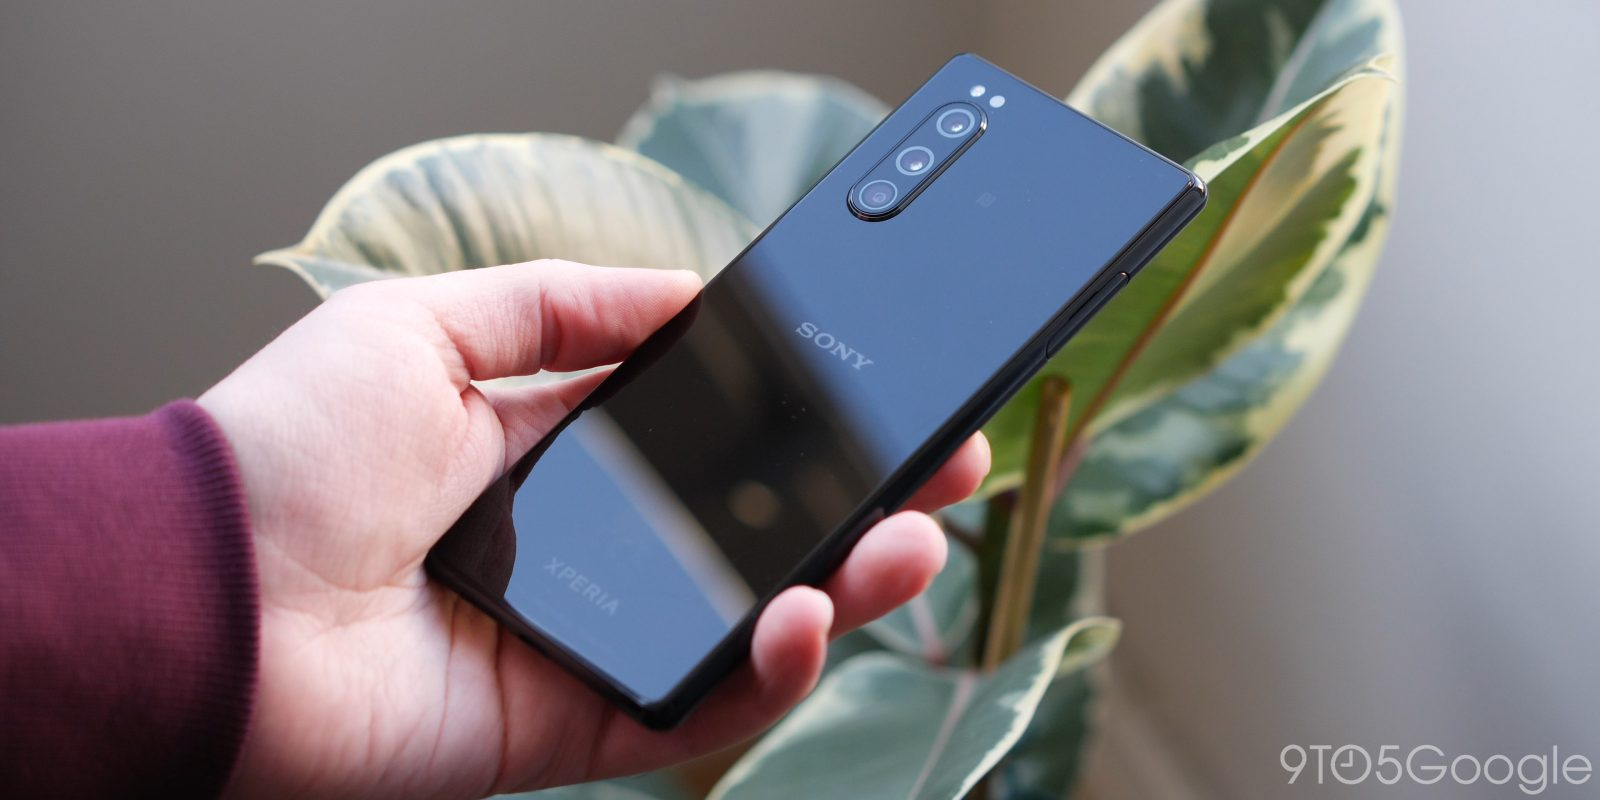 Sony Xperia 5 review: The not-so-compact, 'compact' phone [Video]